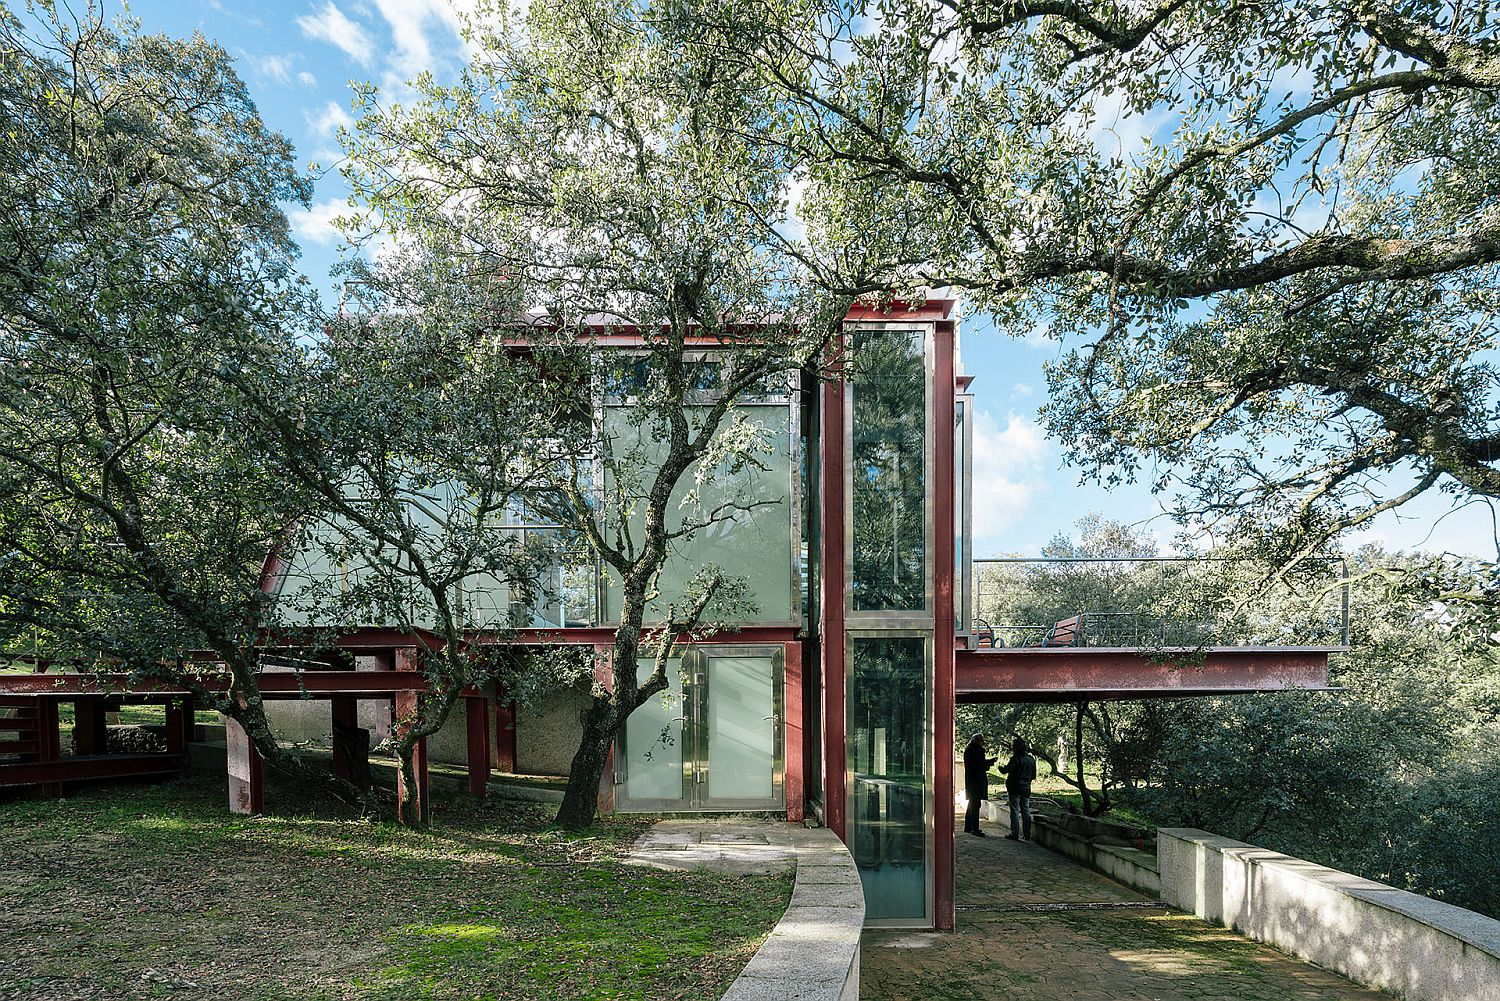 Stunning glass and metal design of The Hidden Pavilion surrounded by forest canopy